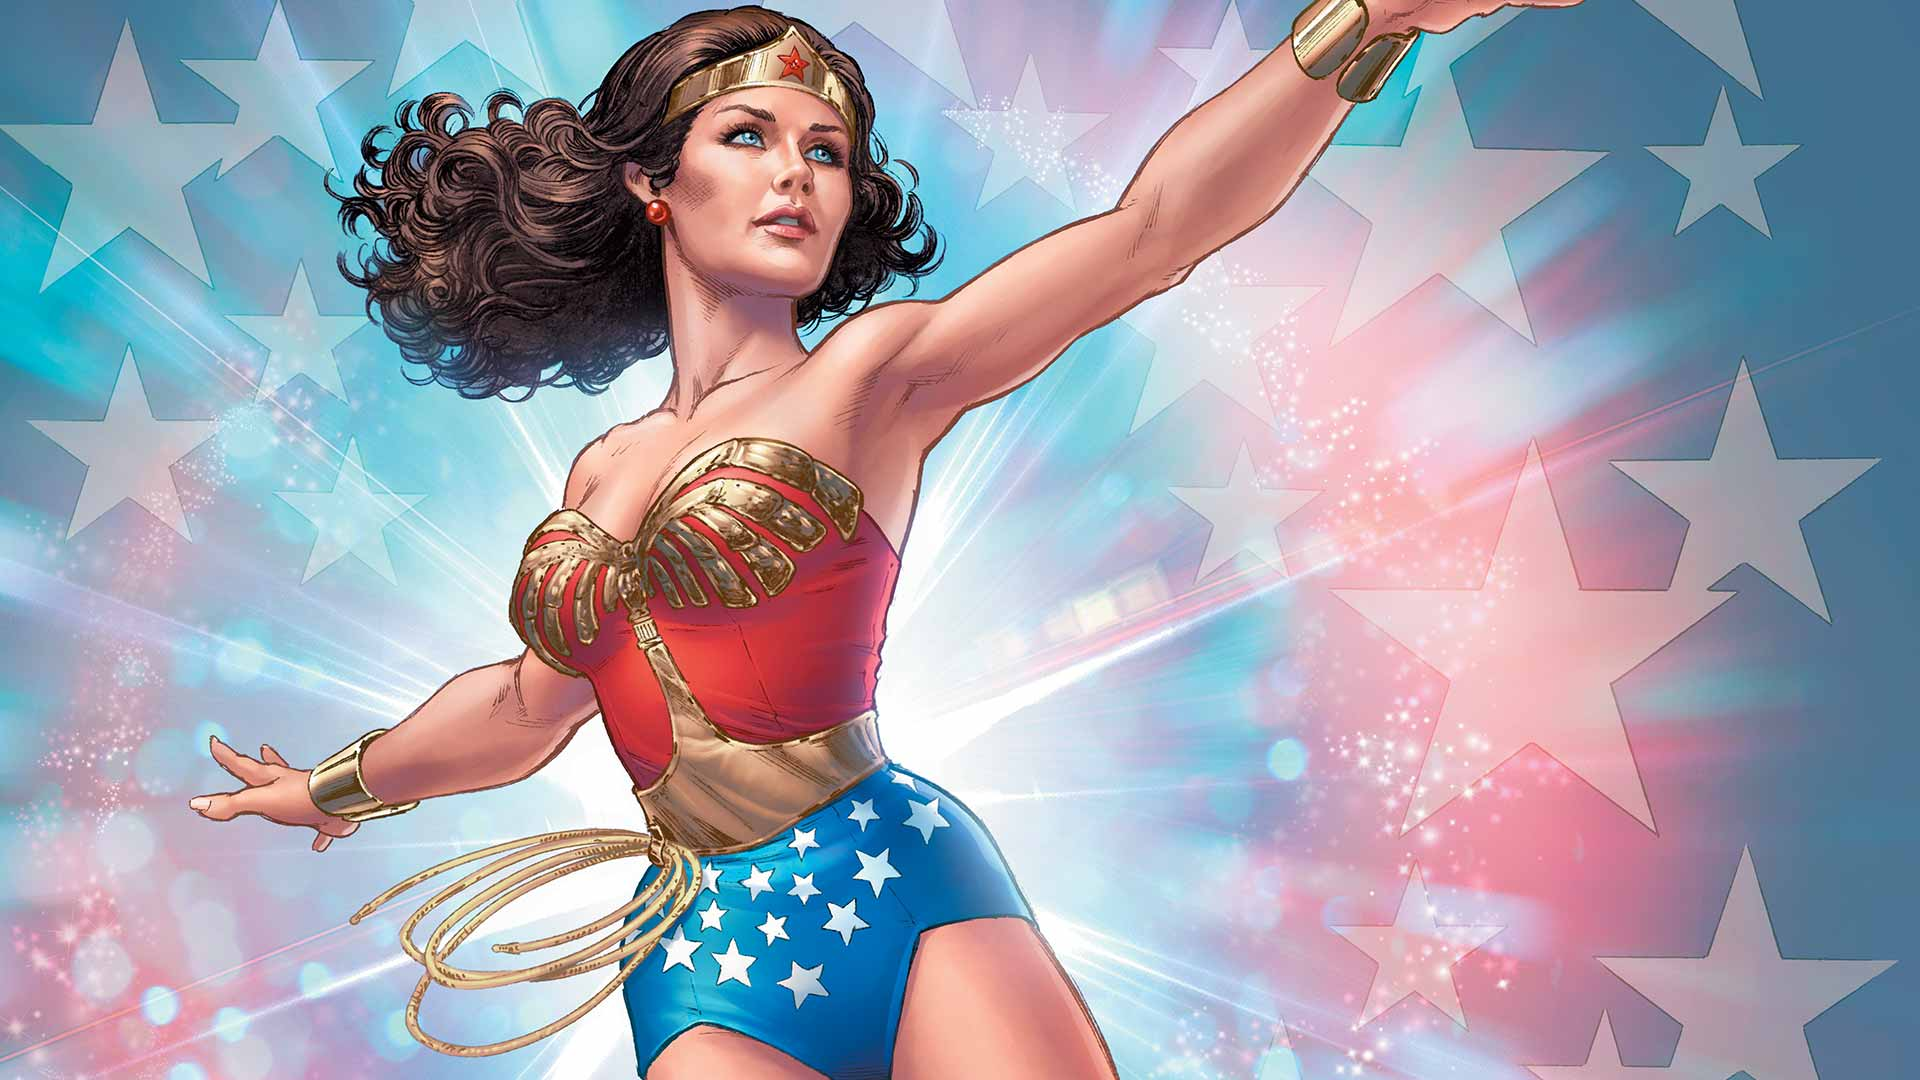 DC Superhero Comes Out As Bisexual GalleryComics 1920x1080 20150429 WonderWoman77 CMYK new neck v2 552849f55810a9.84883346